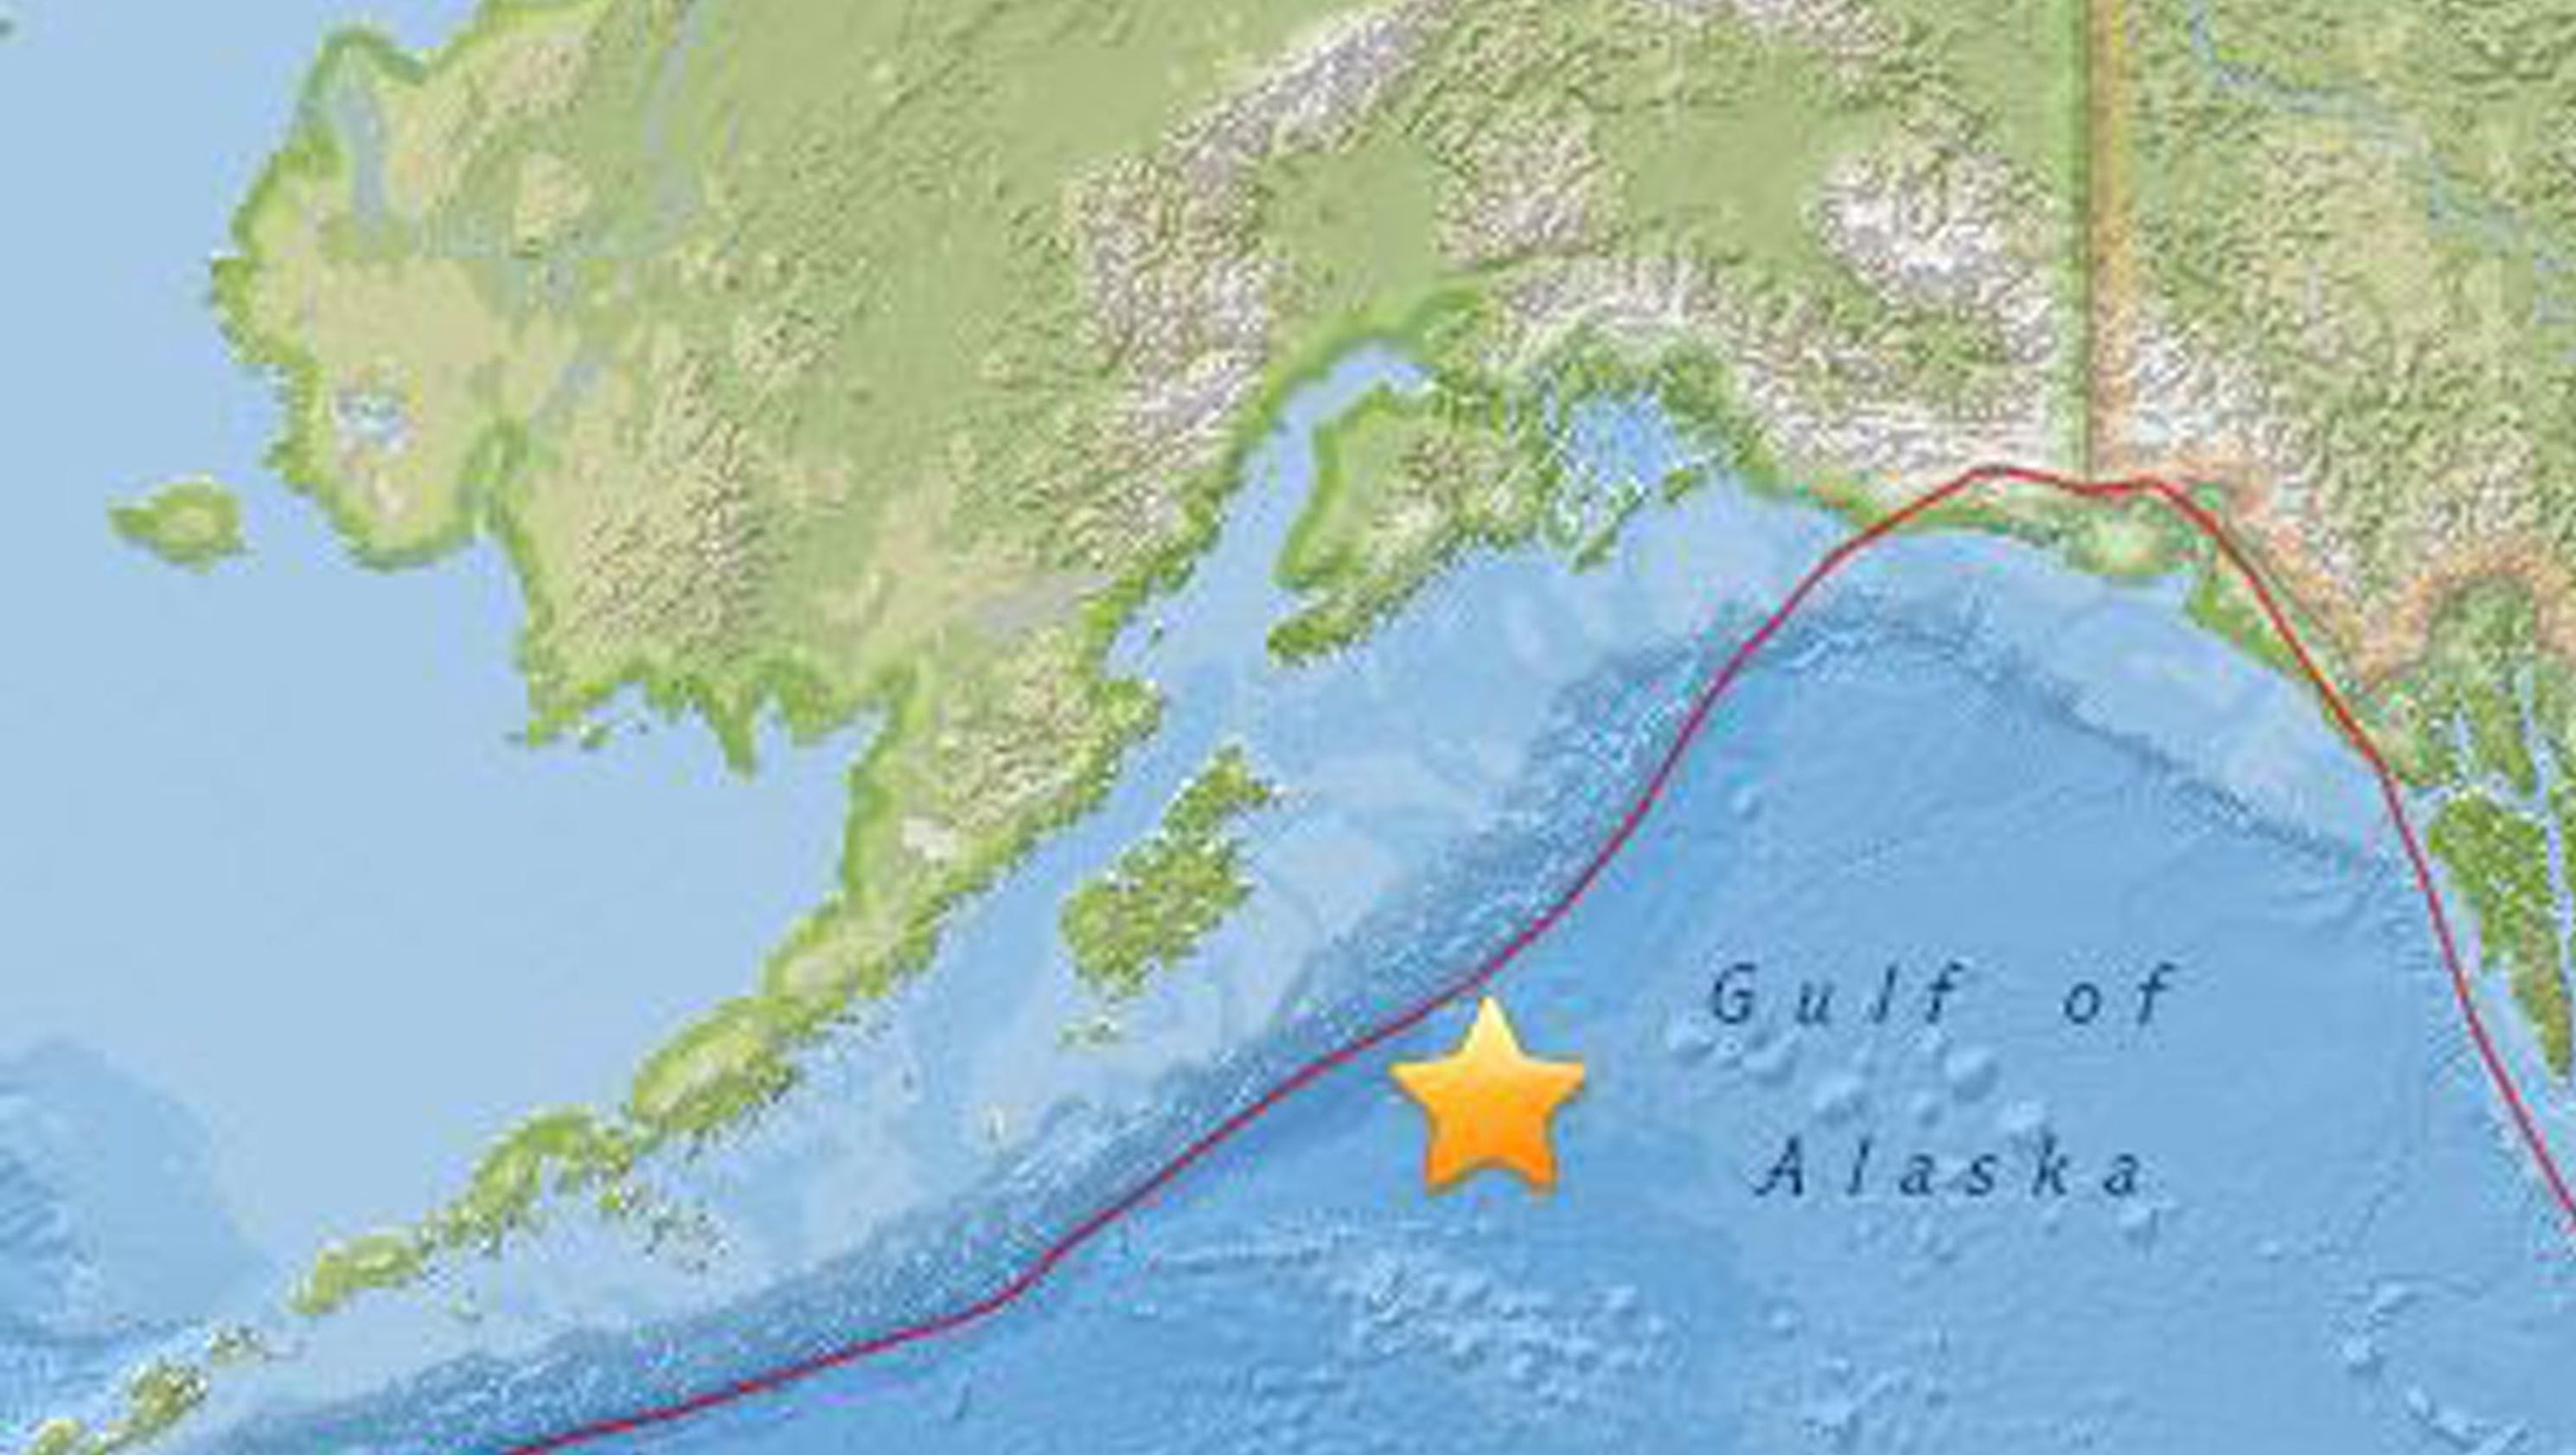 alaska earthquake - photo #28